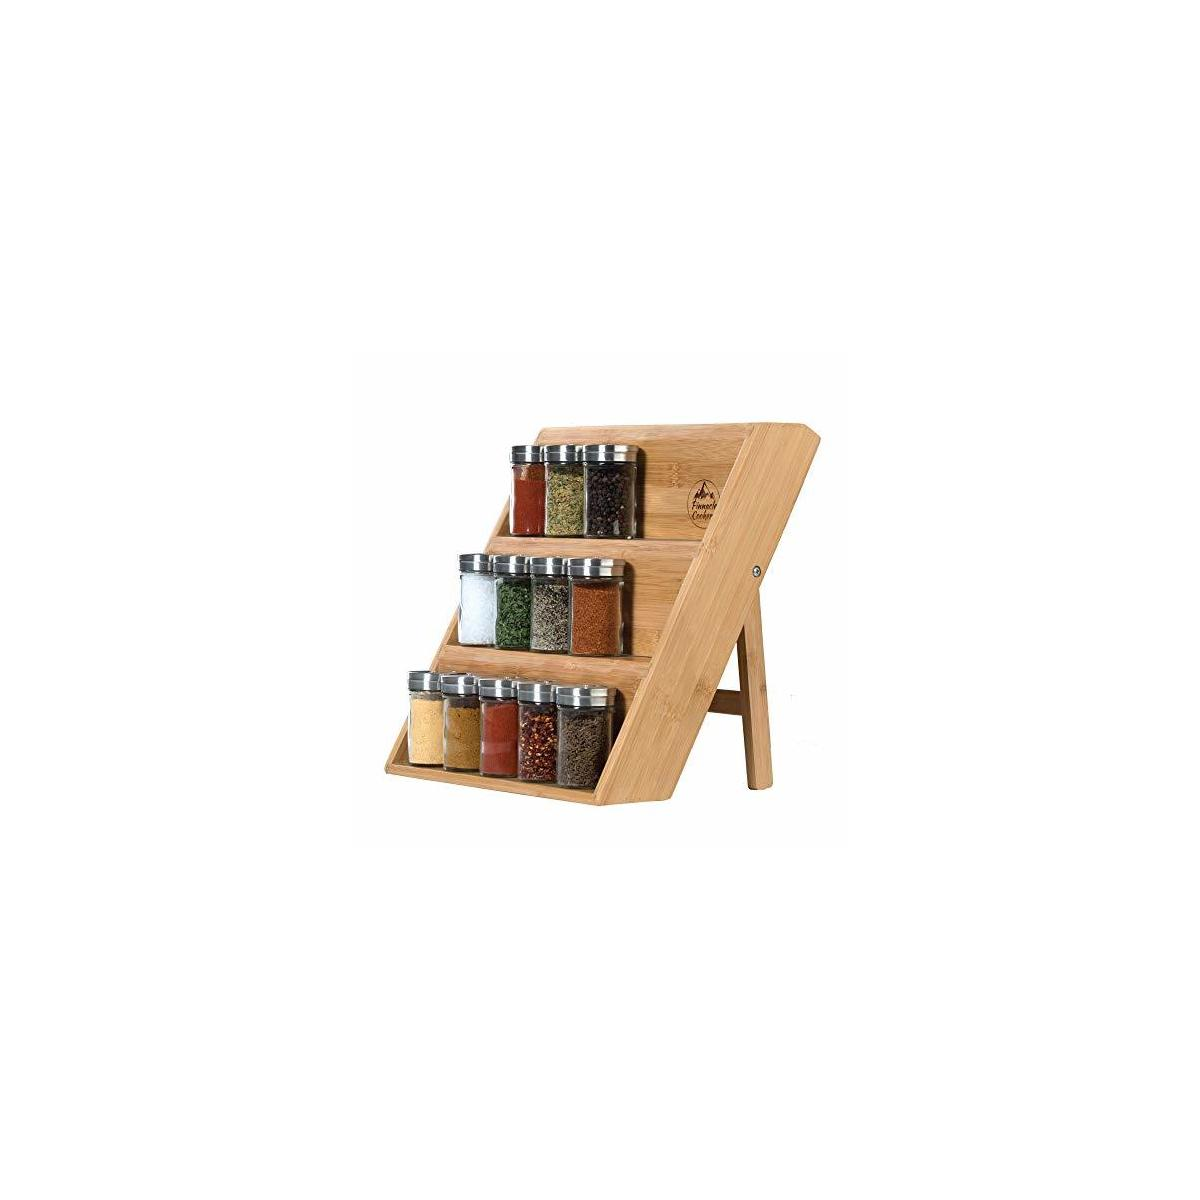 pinnacle cookery bamboo spice rack eco friendly wooden spice rack 3 tiered spice organizer for drawer space saving wooden vertical spice shelf for